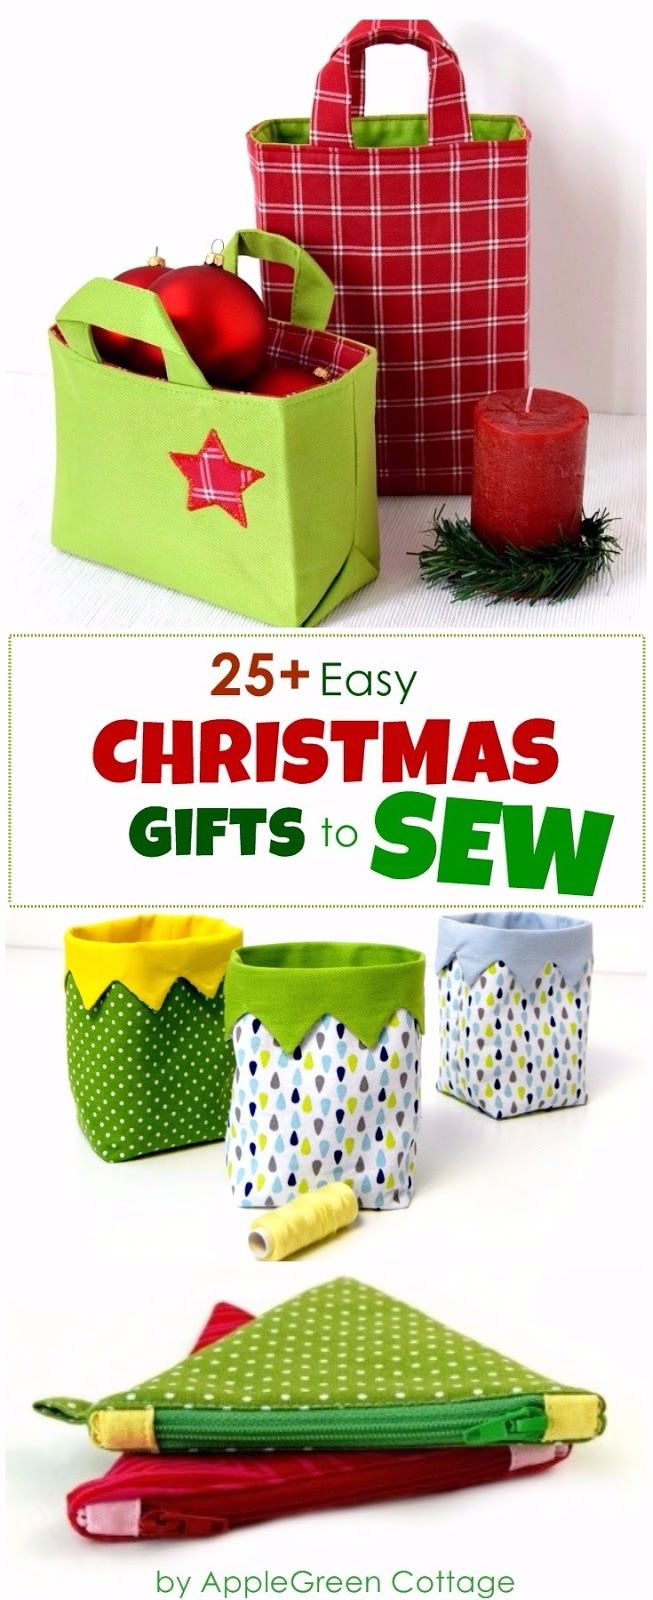 diy christmas presents to sew more than 25 beautiful beginner sewing projects and patterns you can use to make your own christmas gifts